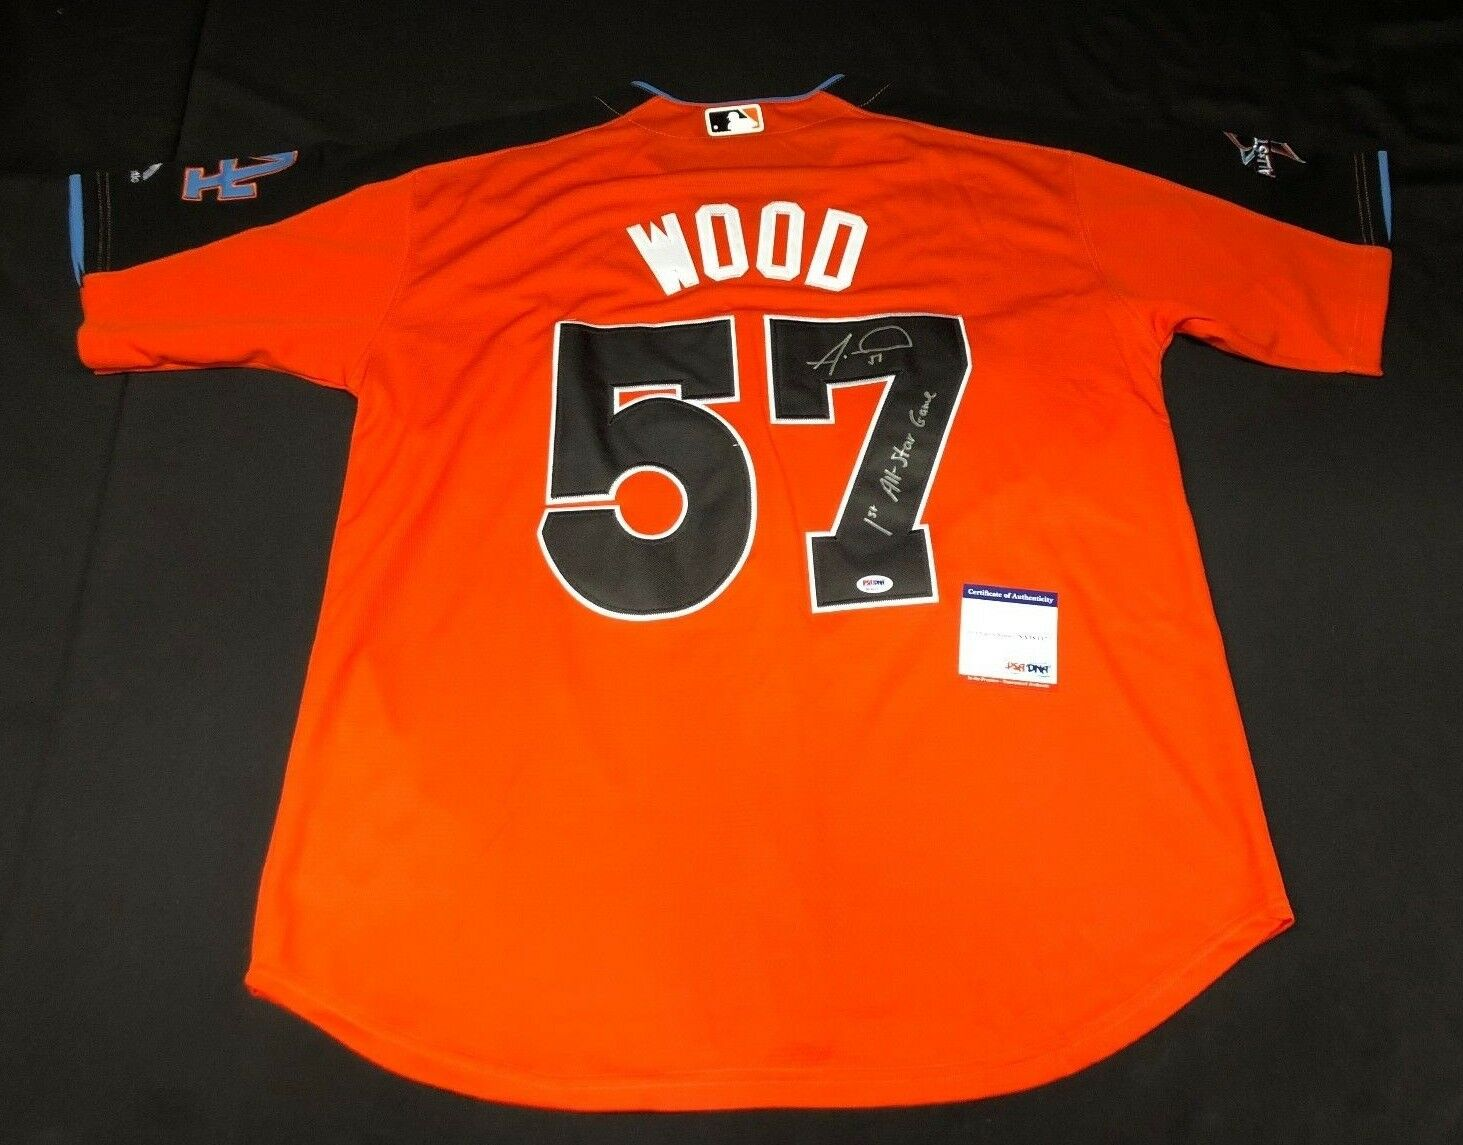 Alex Wood Signed Dodgers 2017 All-Star Jersey